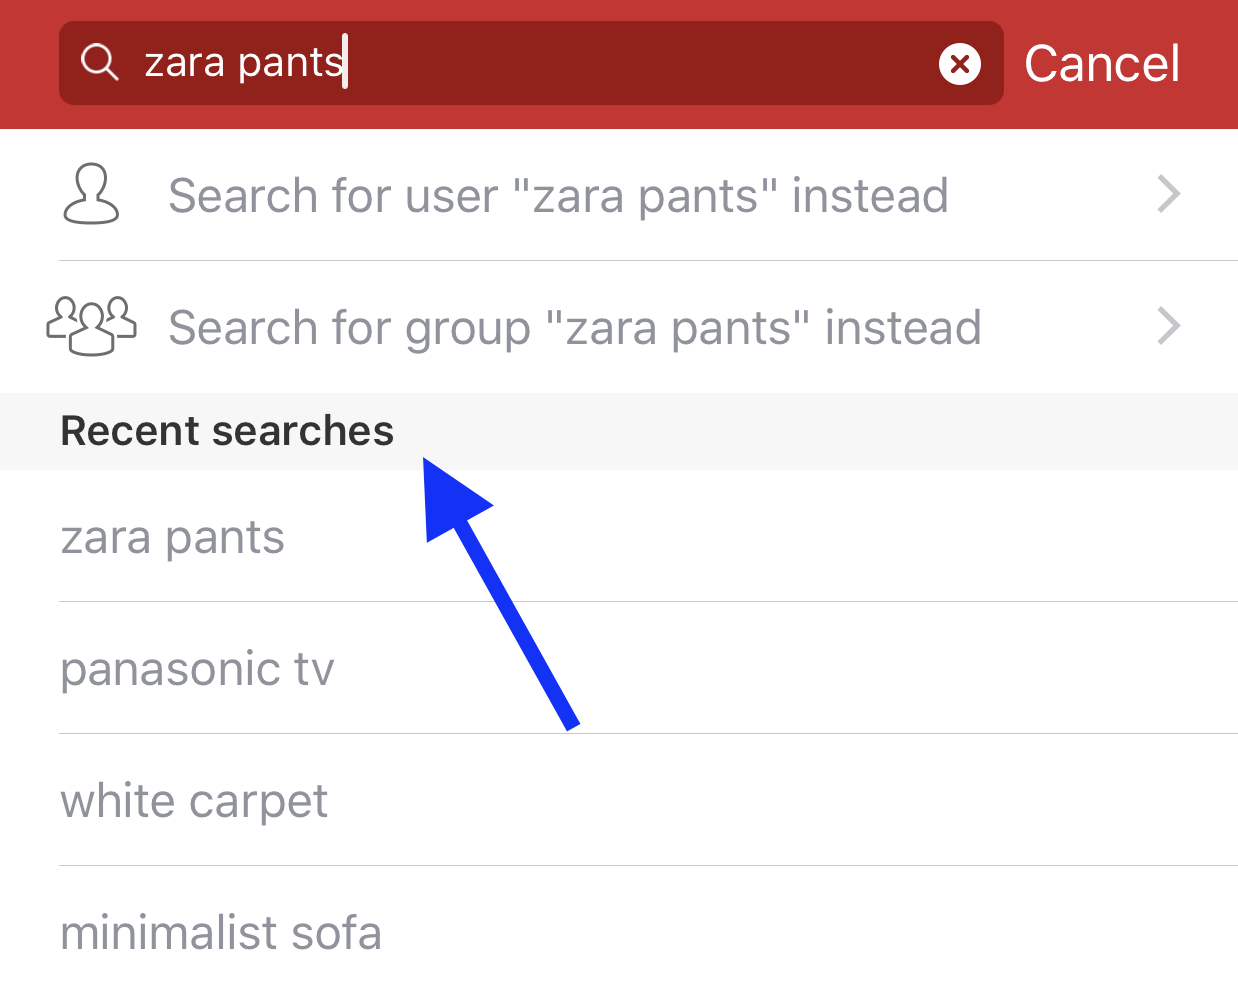 How to view recent search history on Carousell for iOS